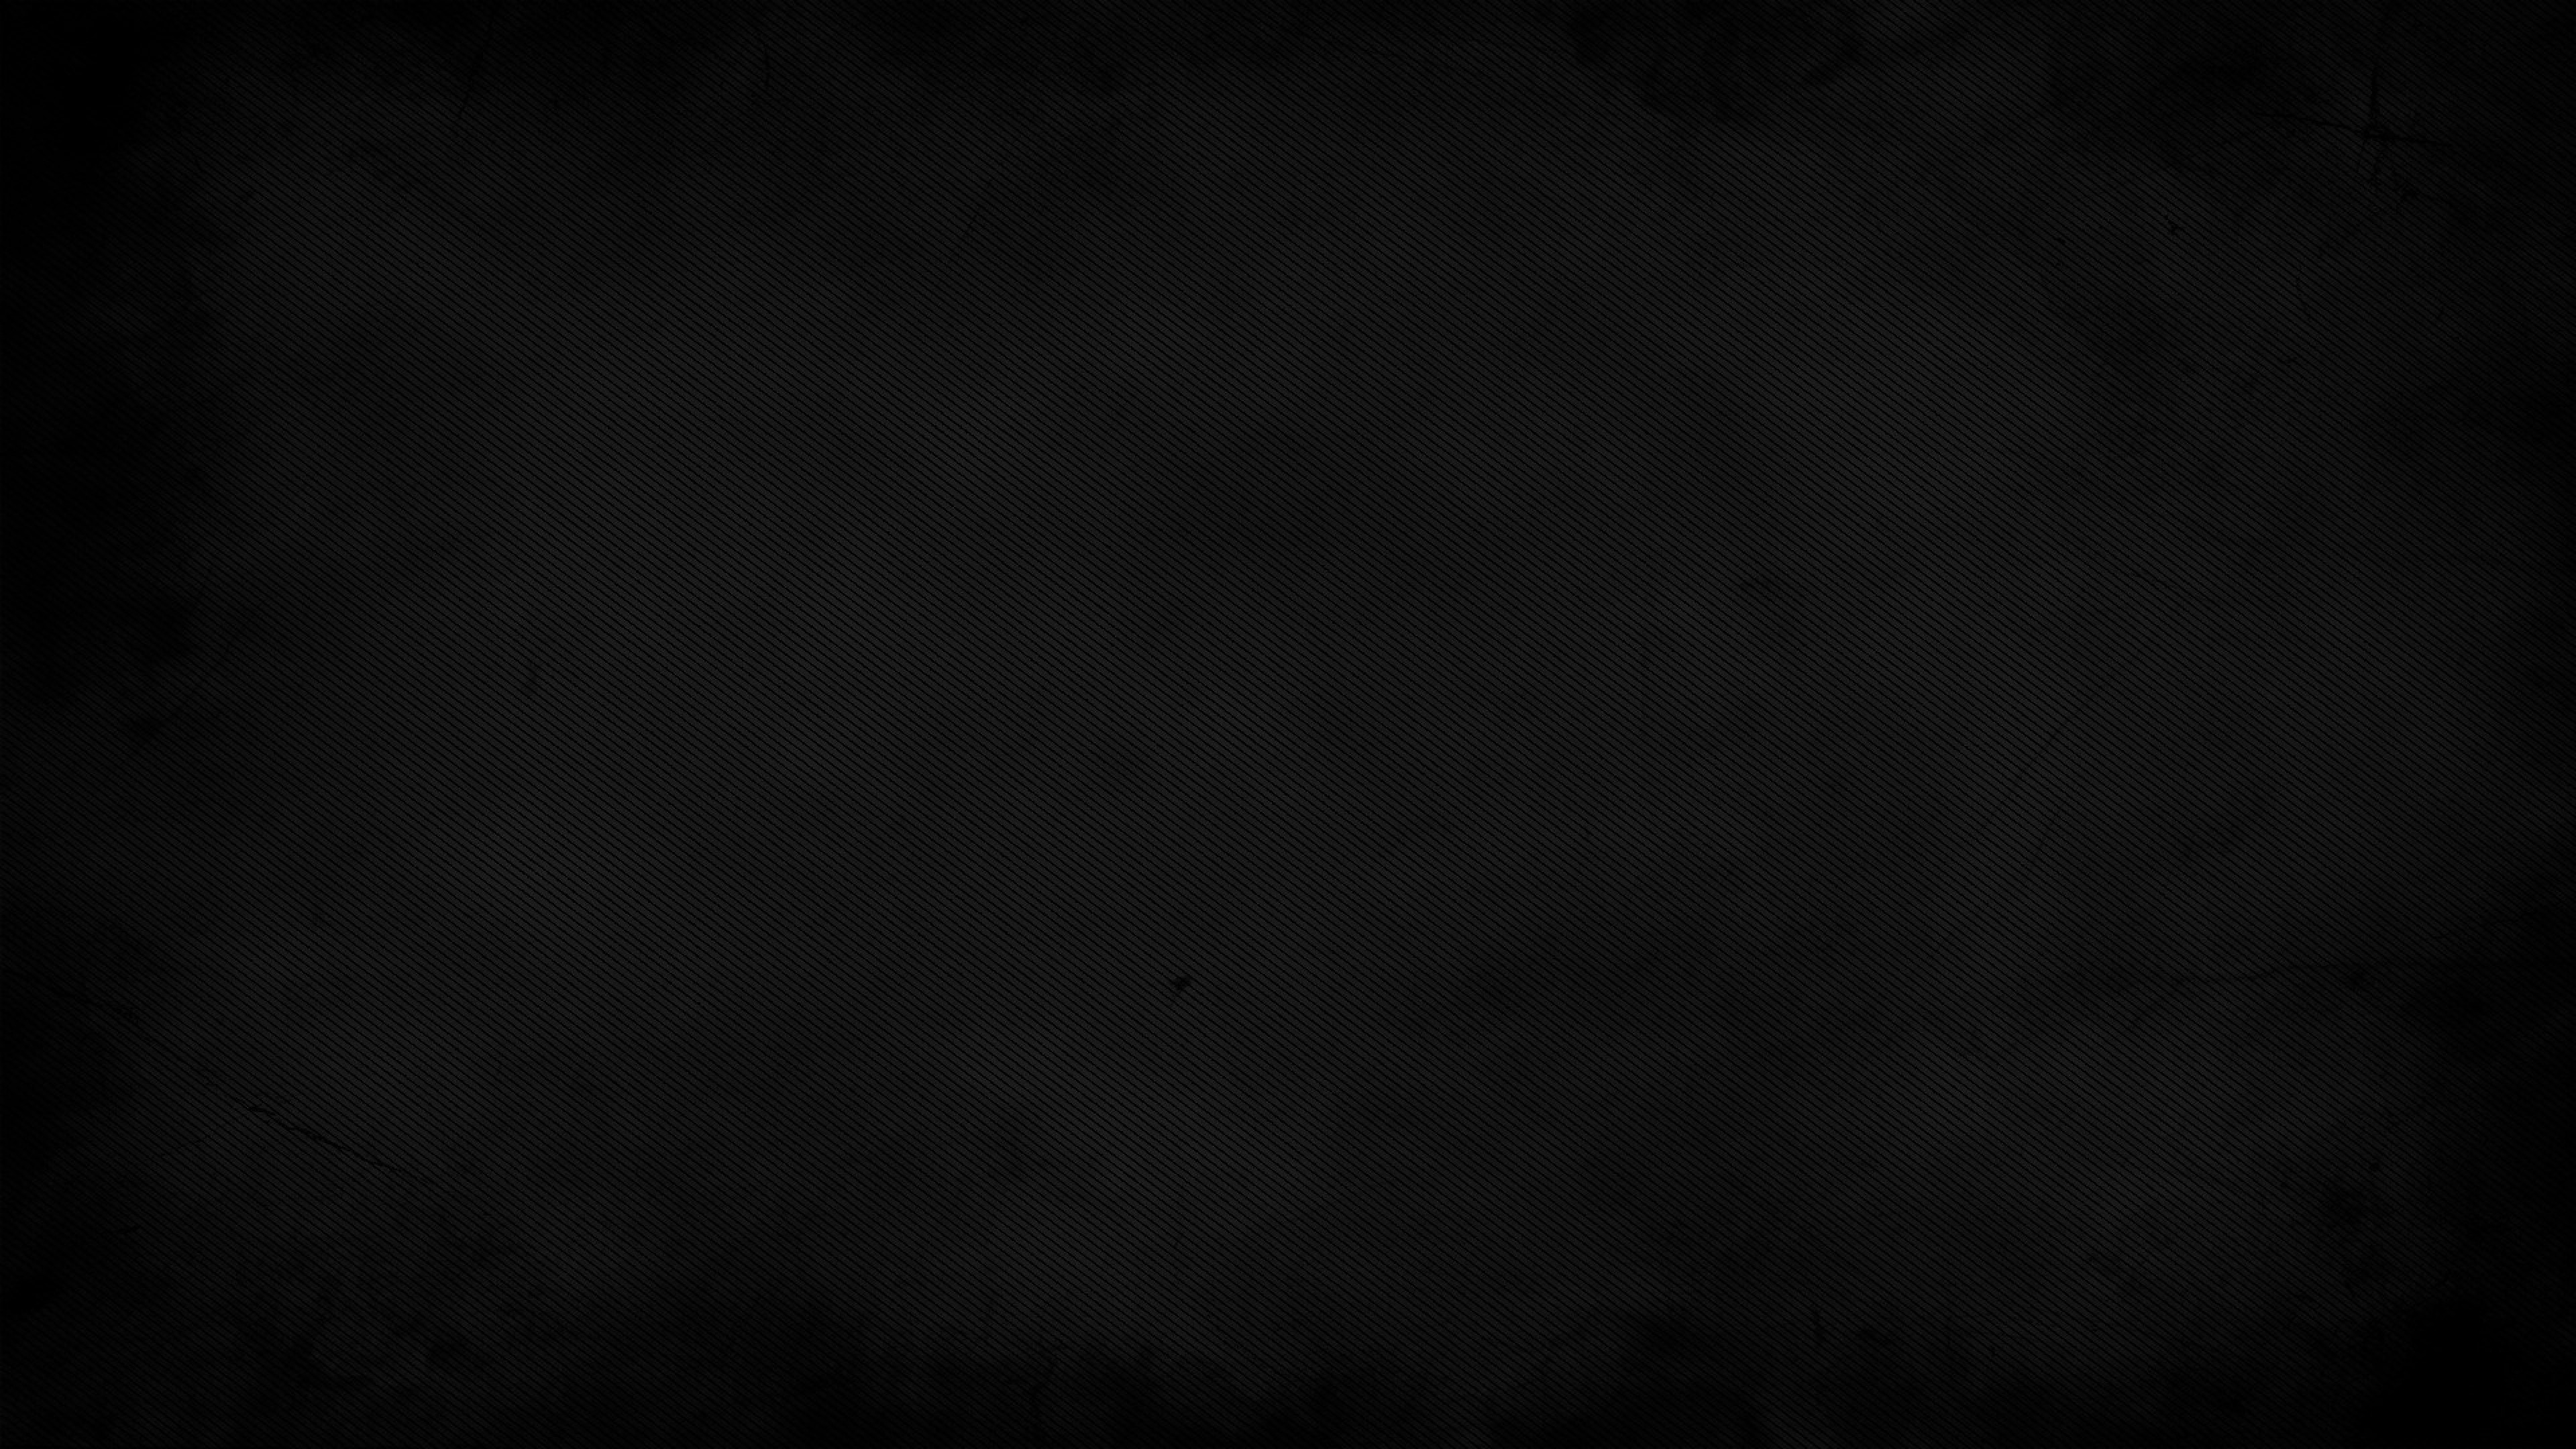 4k Black Wallpaper